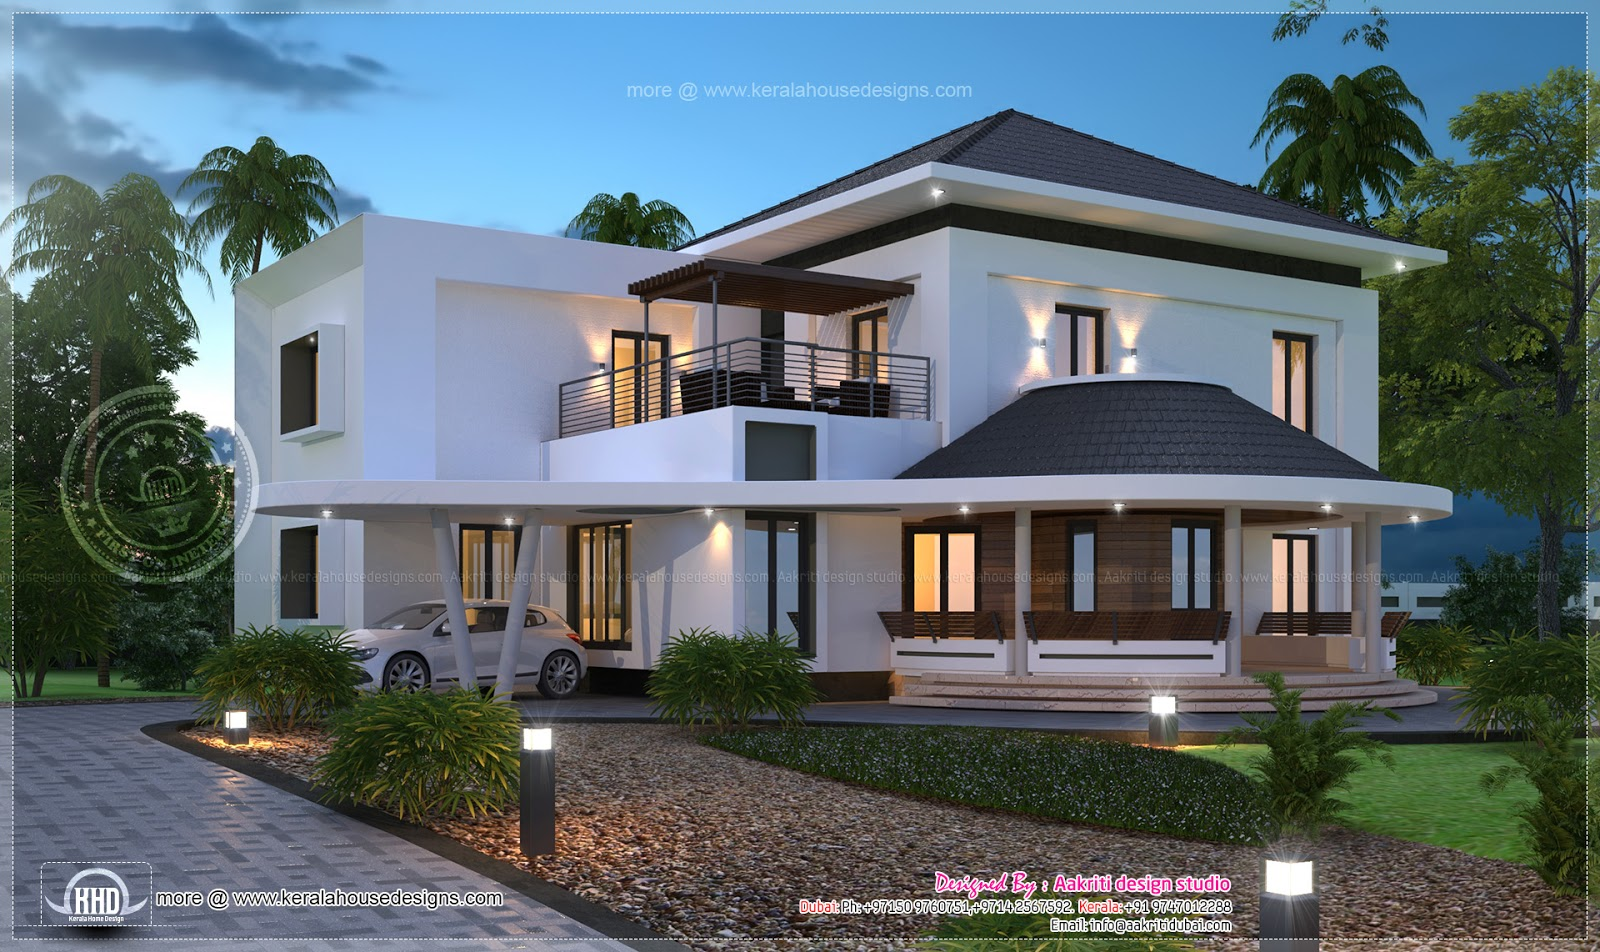 Beautiful 3200 sq ft modern villa exterior kerala home design and floor plans - Modern villa designs ...